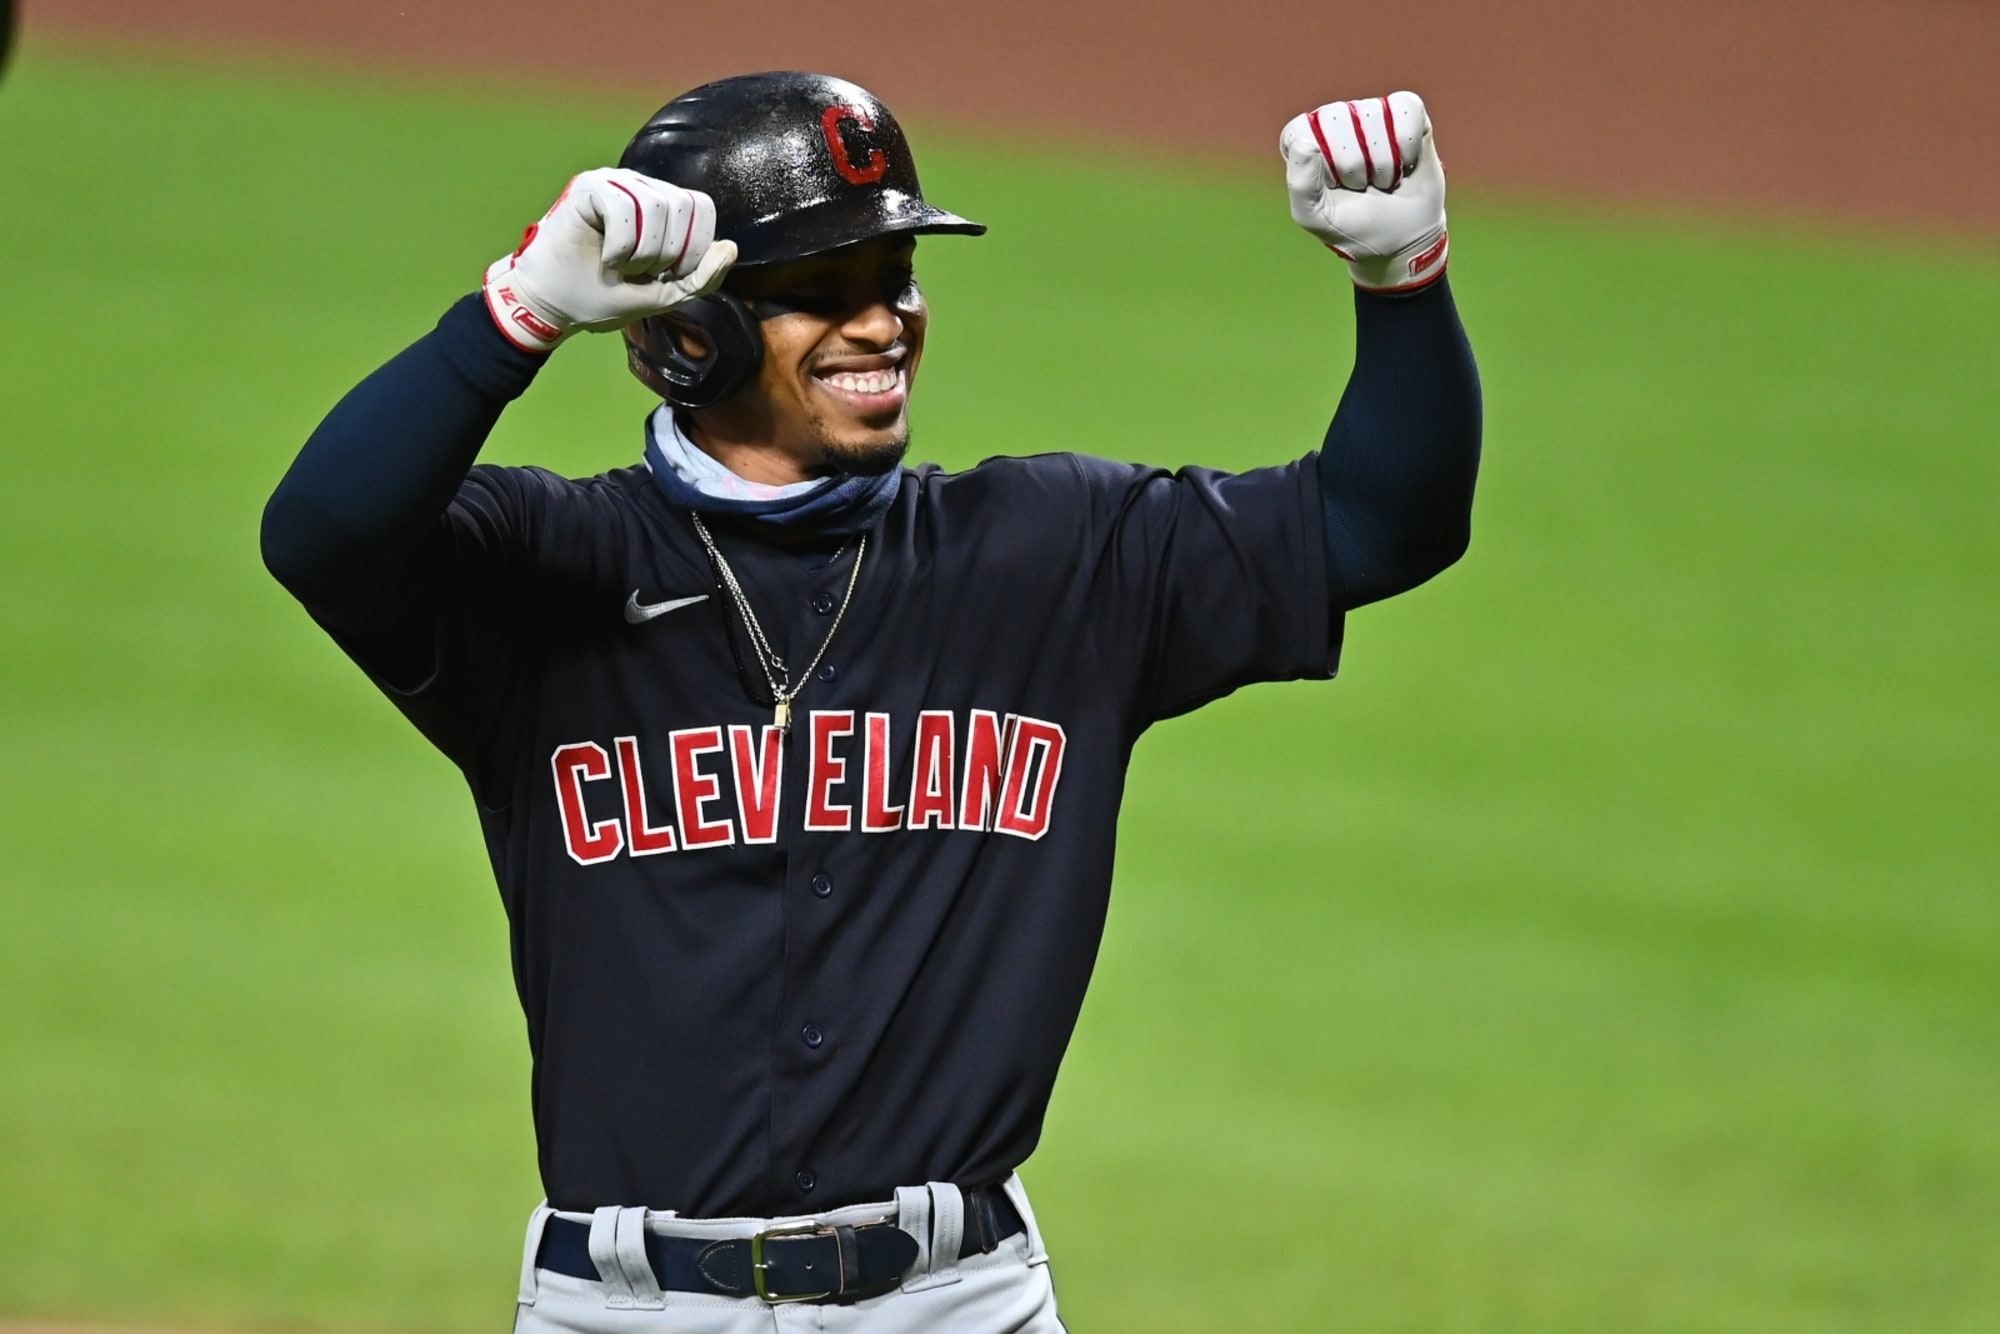 Here's what the Yankees need to give up to trade for Francisco Lindor